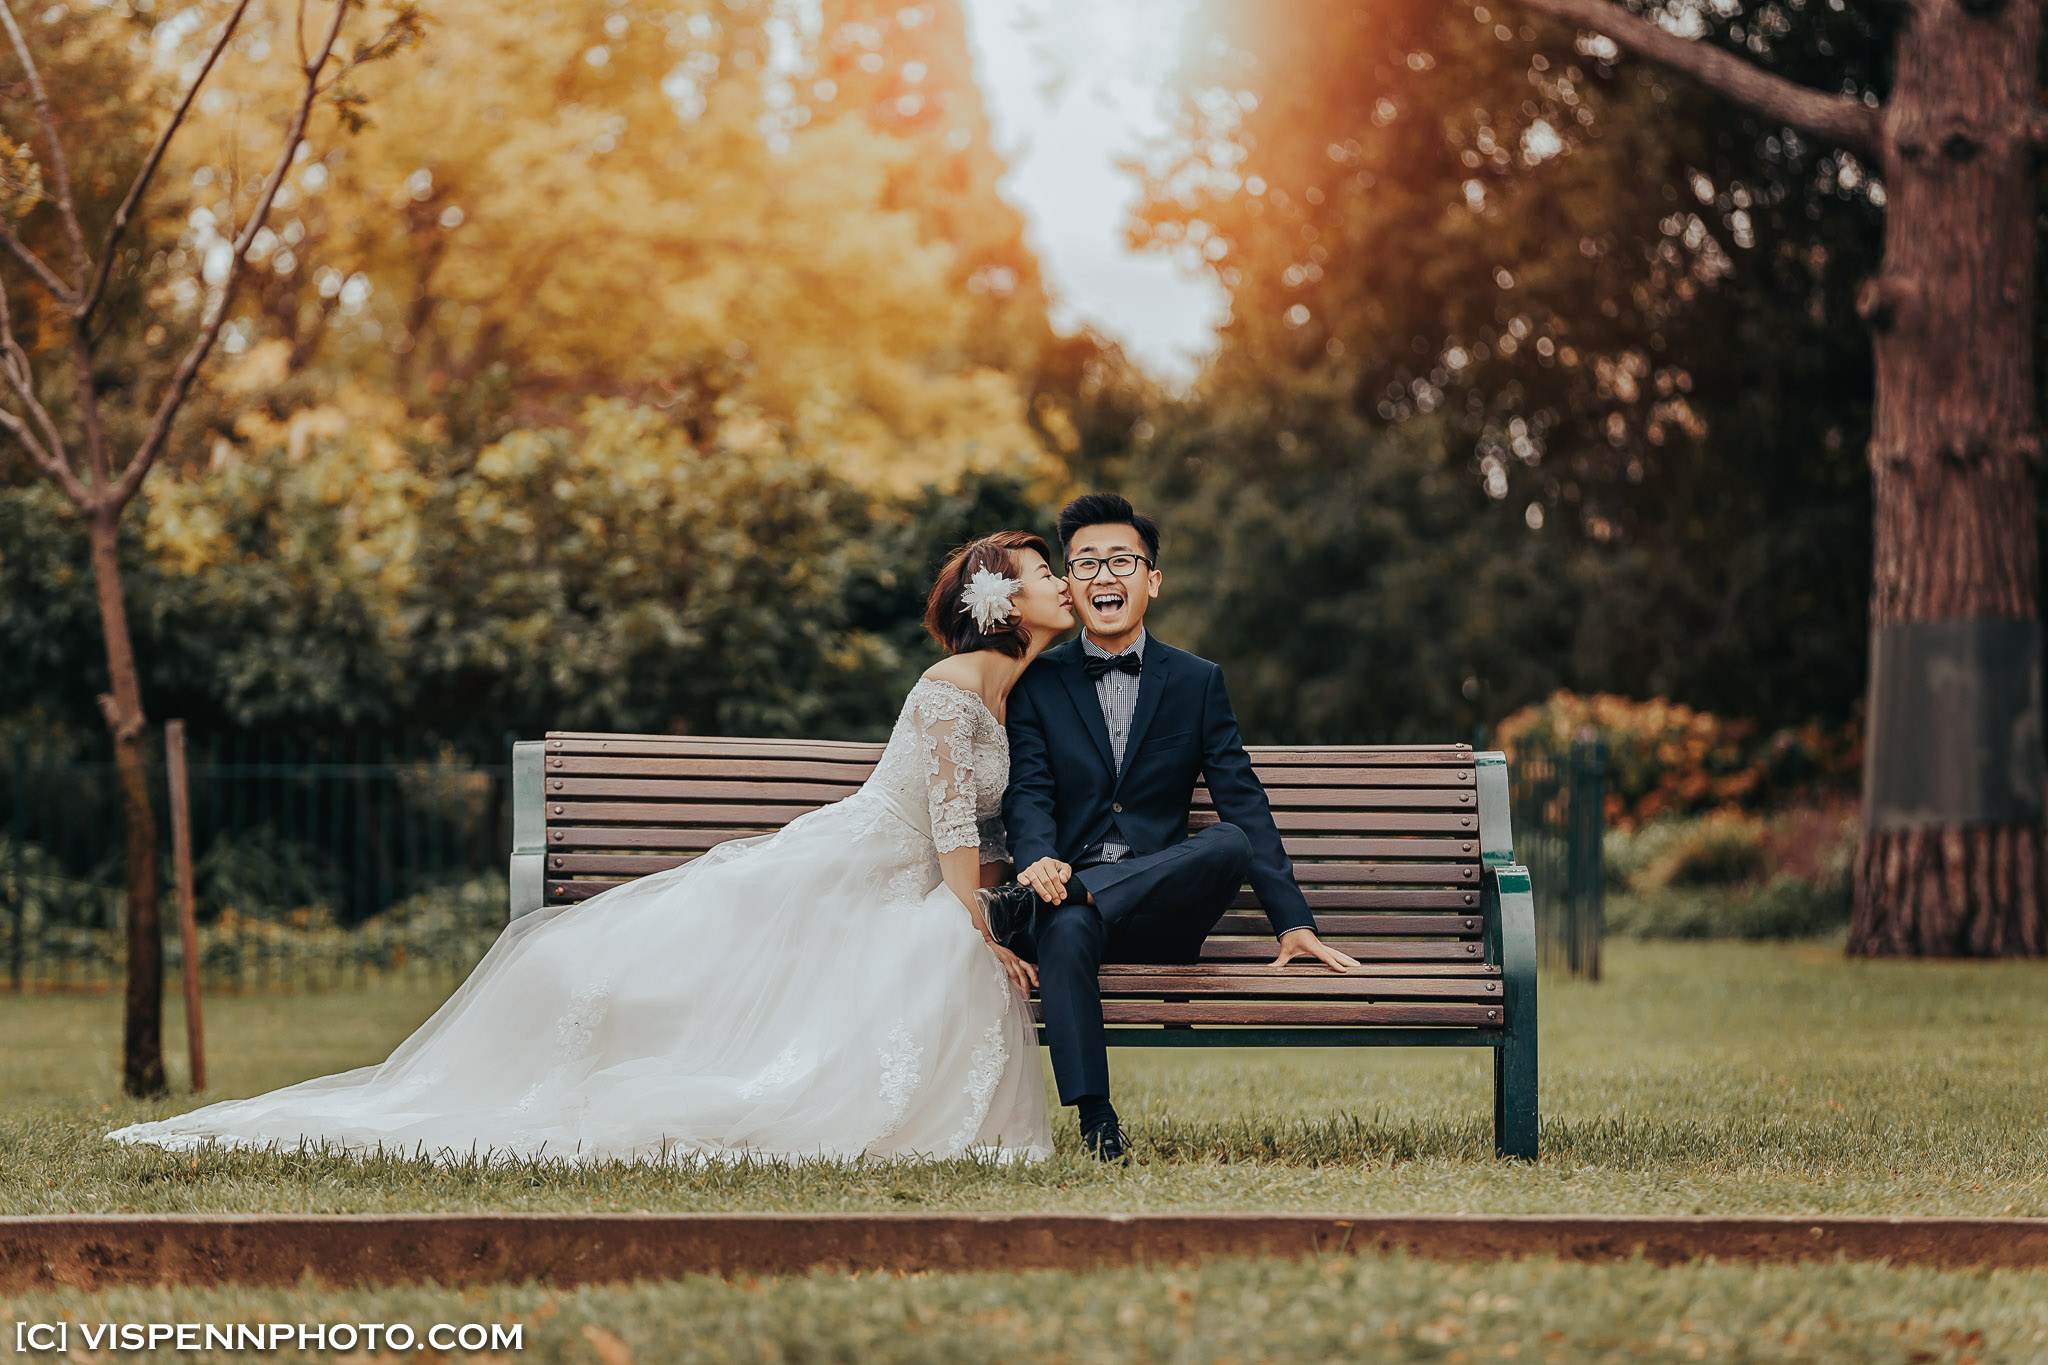 PRE WEDDING Photography Melbourne ZHPENN DaisyDanChenPreWedding 0976